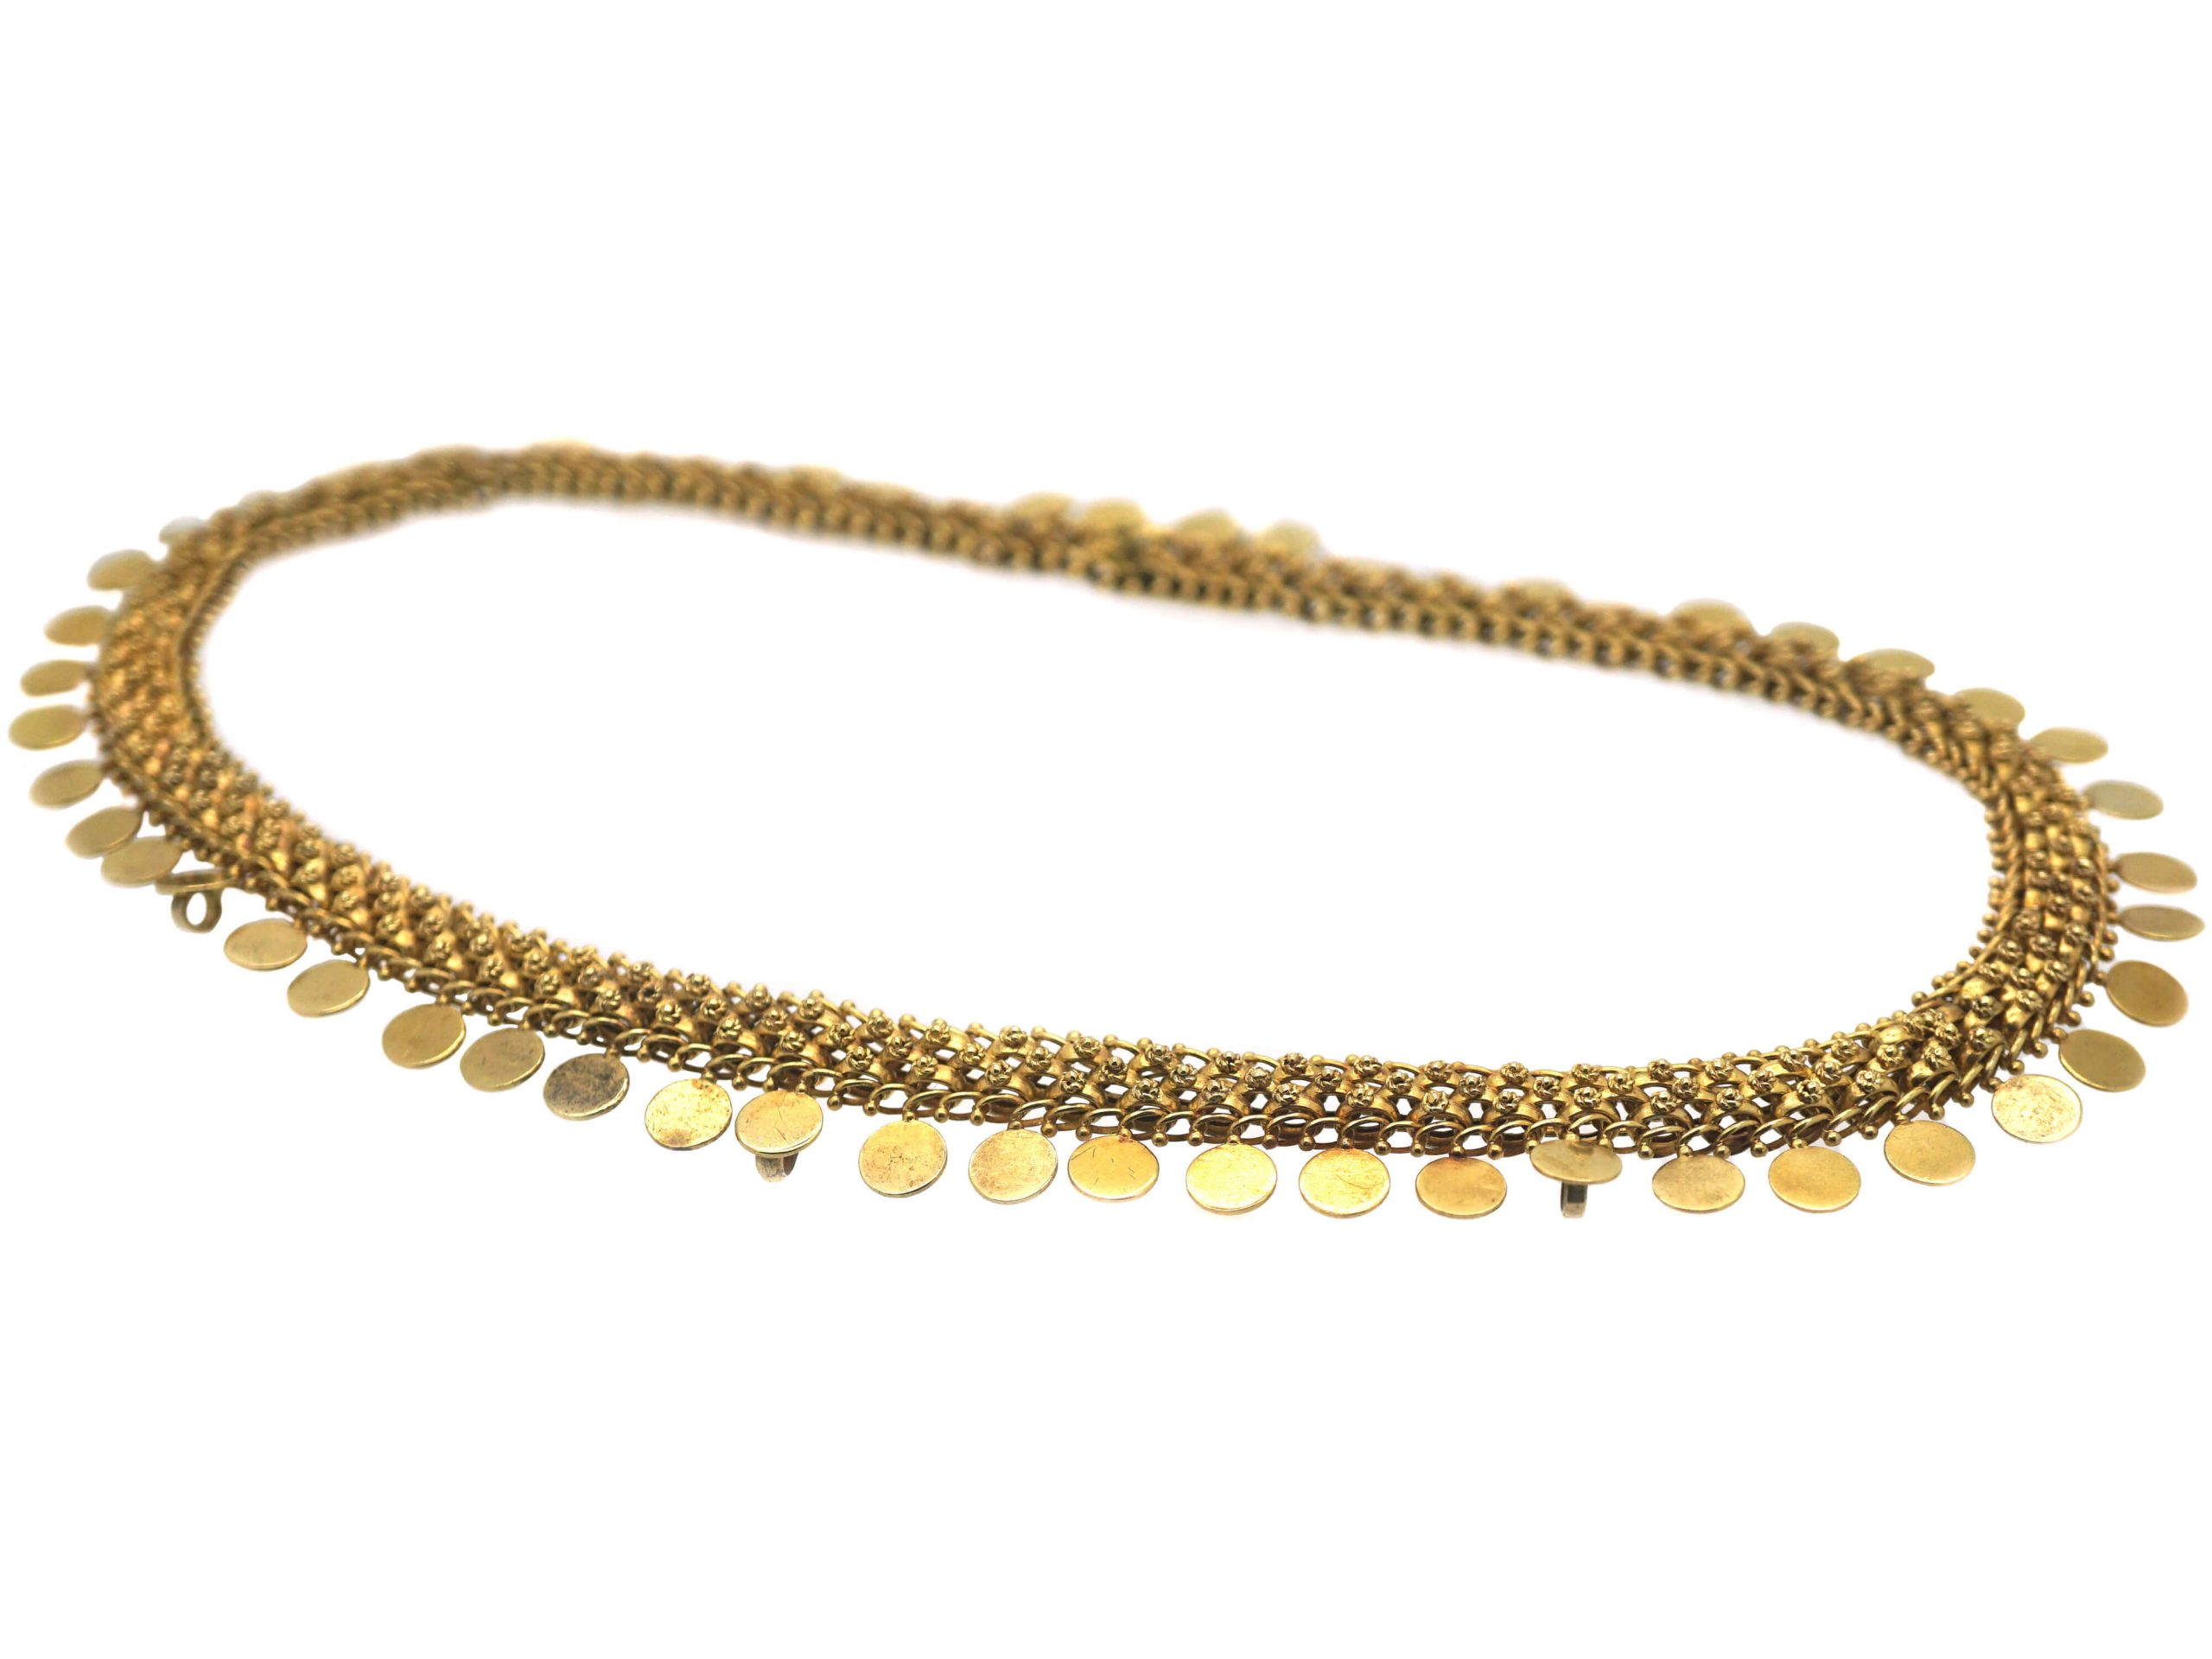 Victorian 15ct Gold Collar with Disc Drops